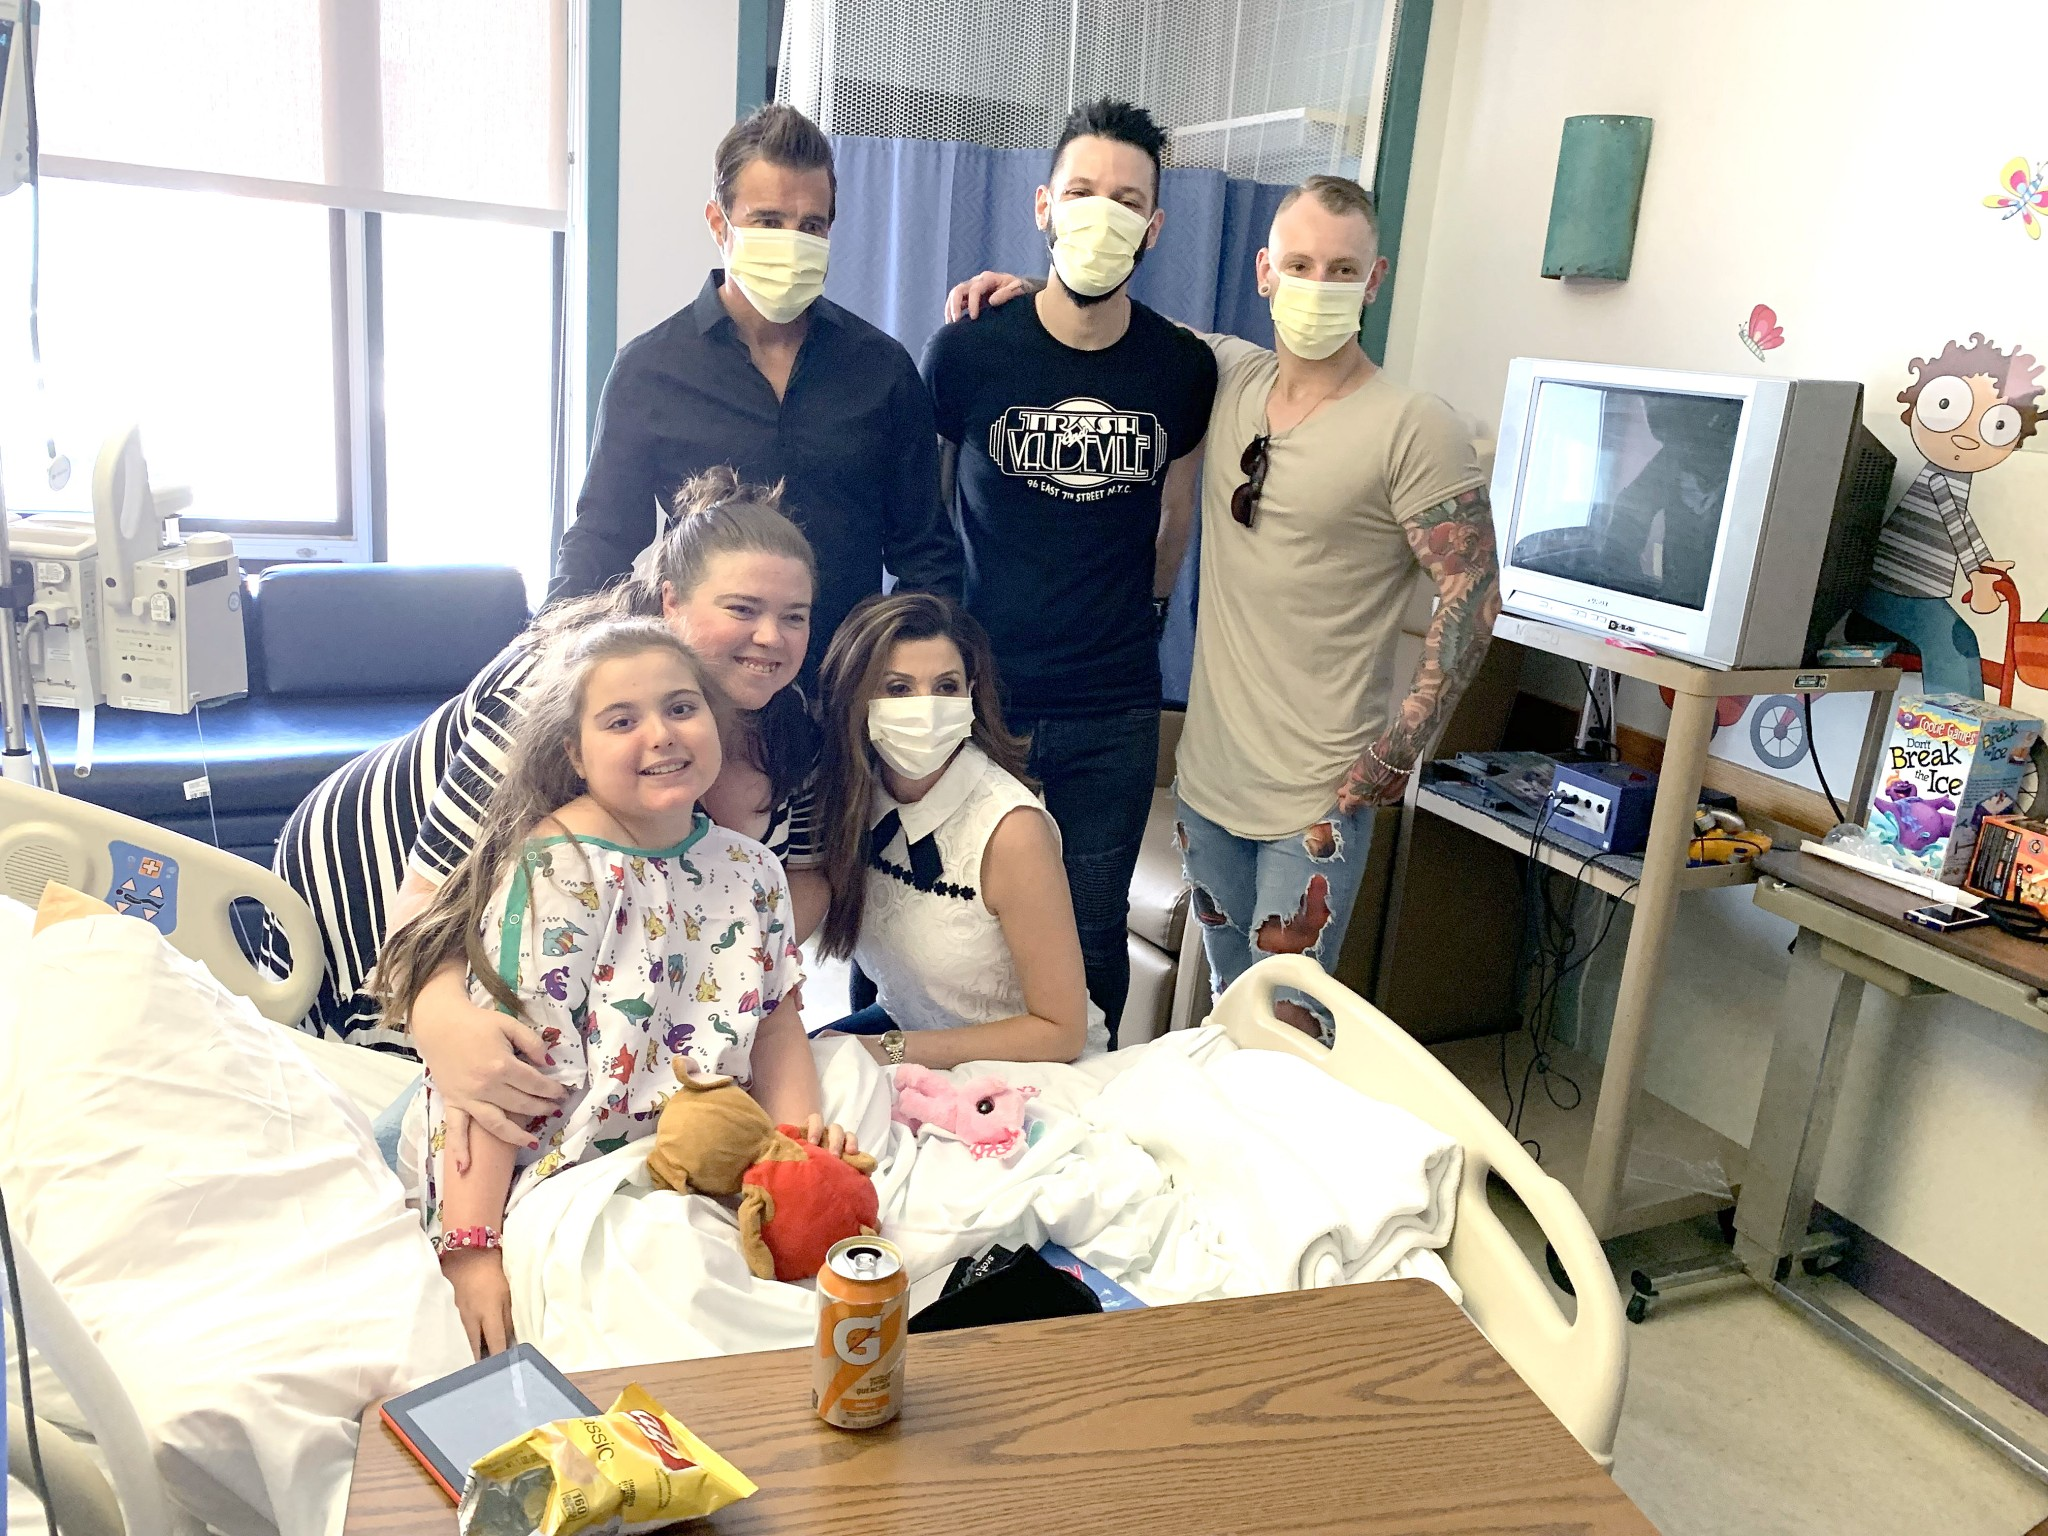 Singer Scott Stapp, former frontman for the rock band Creed, his wife Jaclyn and band members pose for photos smile behind hospital masks while visiting patients at Mercy Health – Children's Hospital during a June 28 visit. (Photo by Jeff Ziviski)